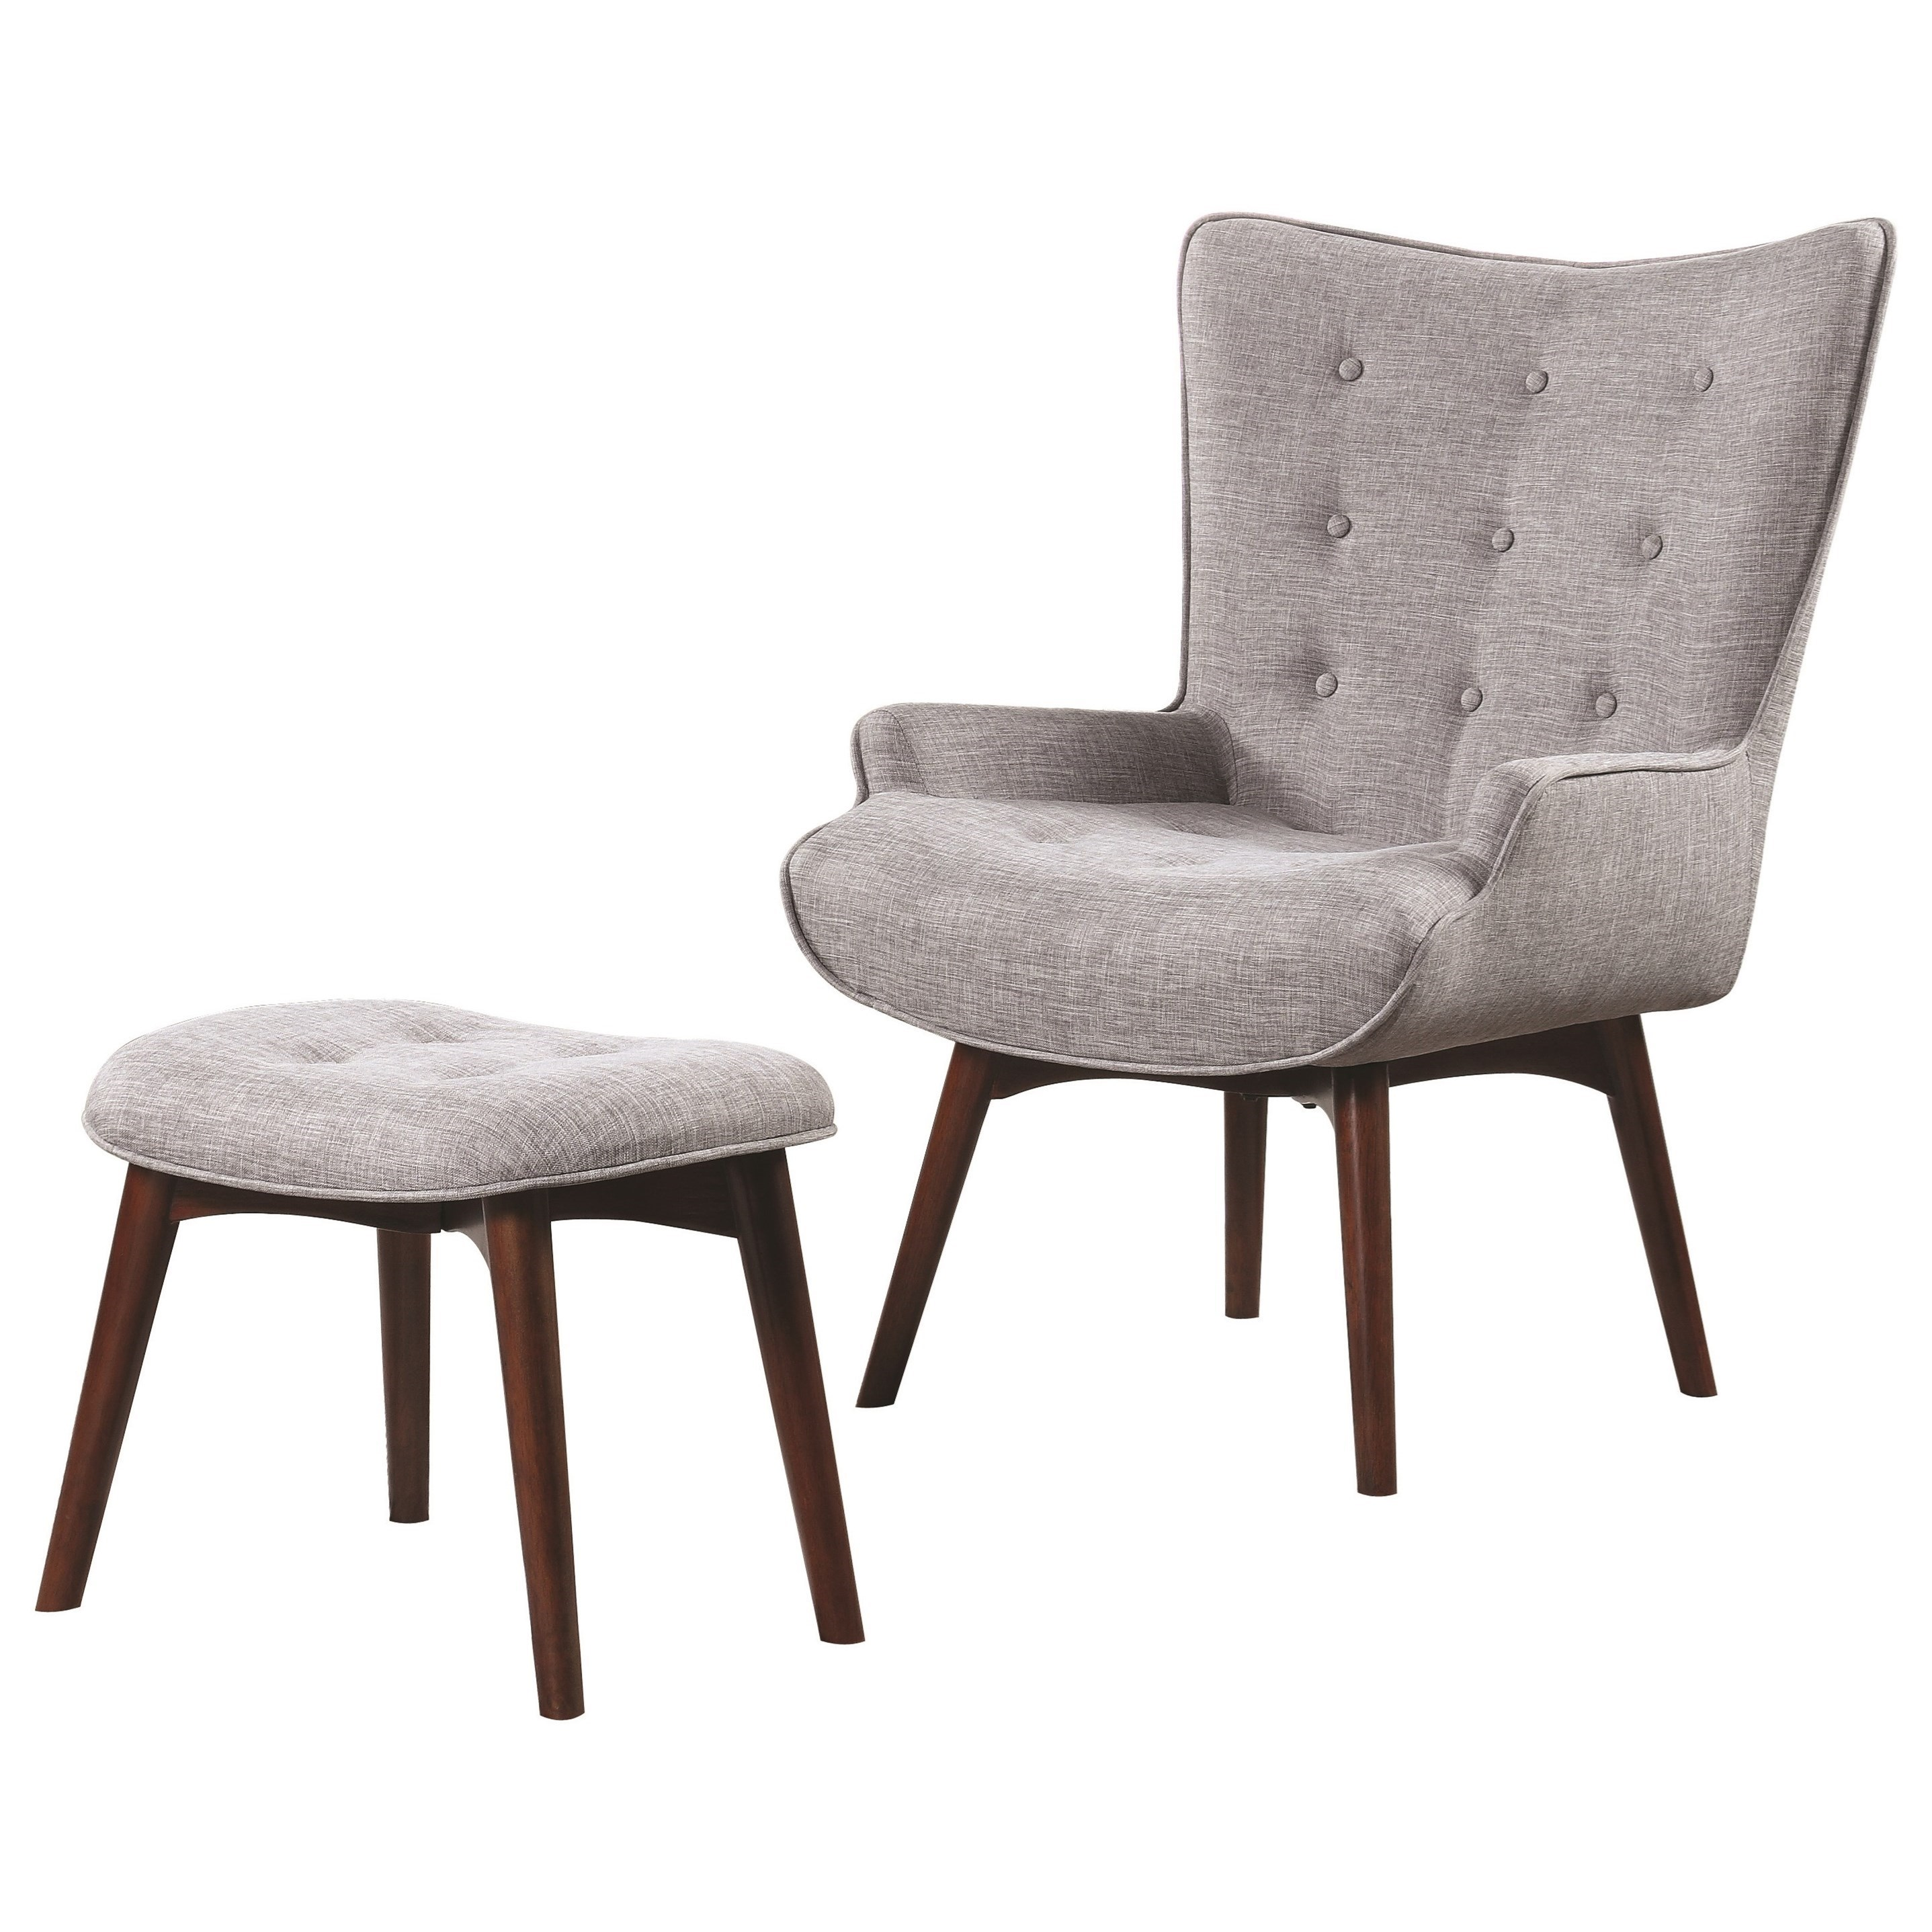 contemporary accent chair covers for computer chairs scott living 903820 mid century modern with ottoman